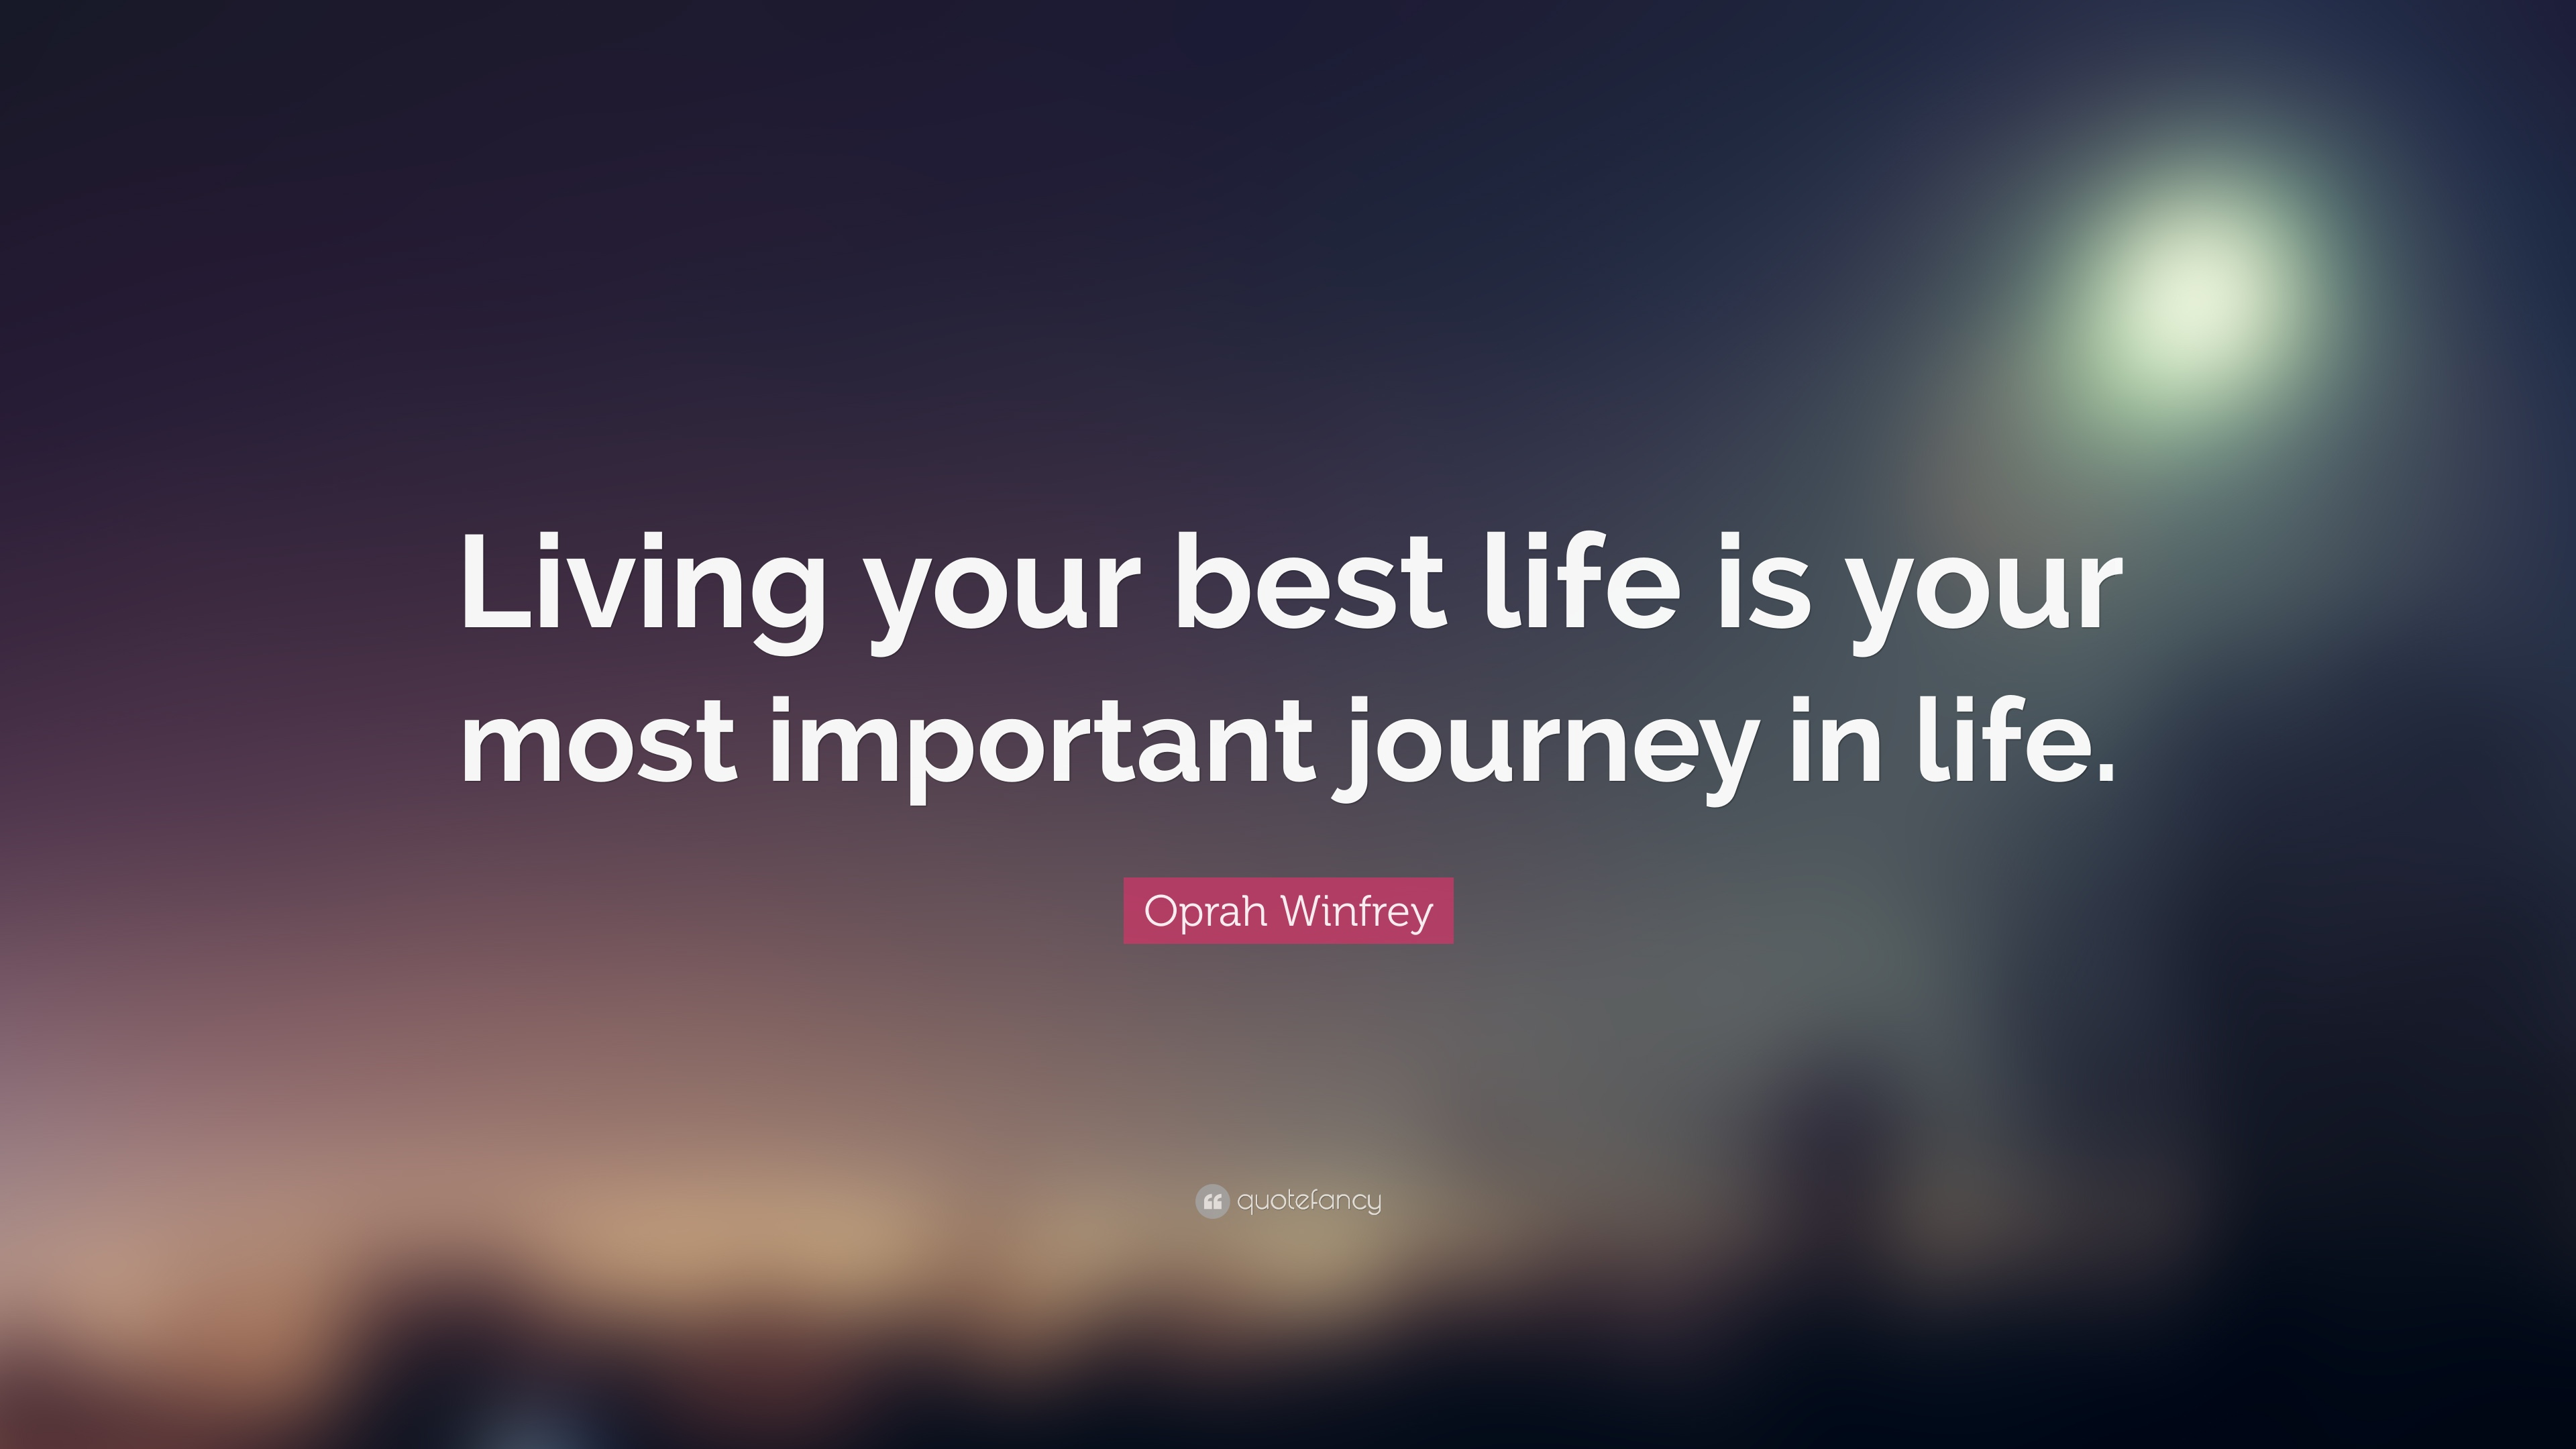 Oprah Winfrey Quote Living your best life is your most important